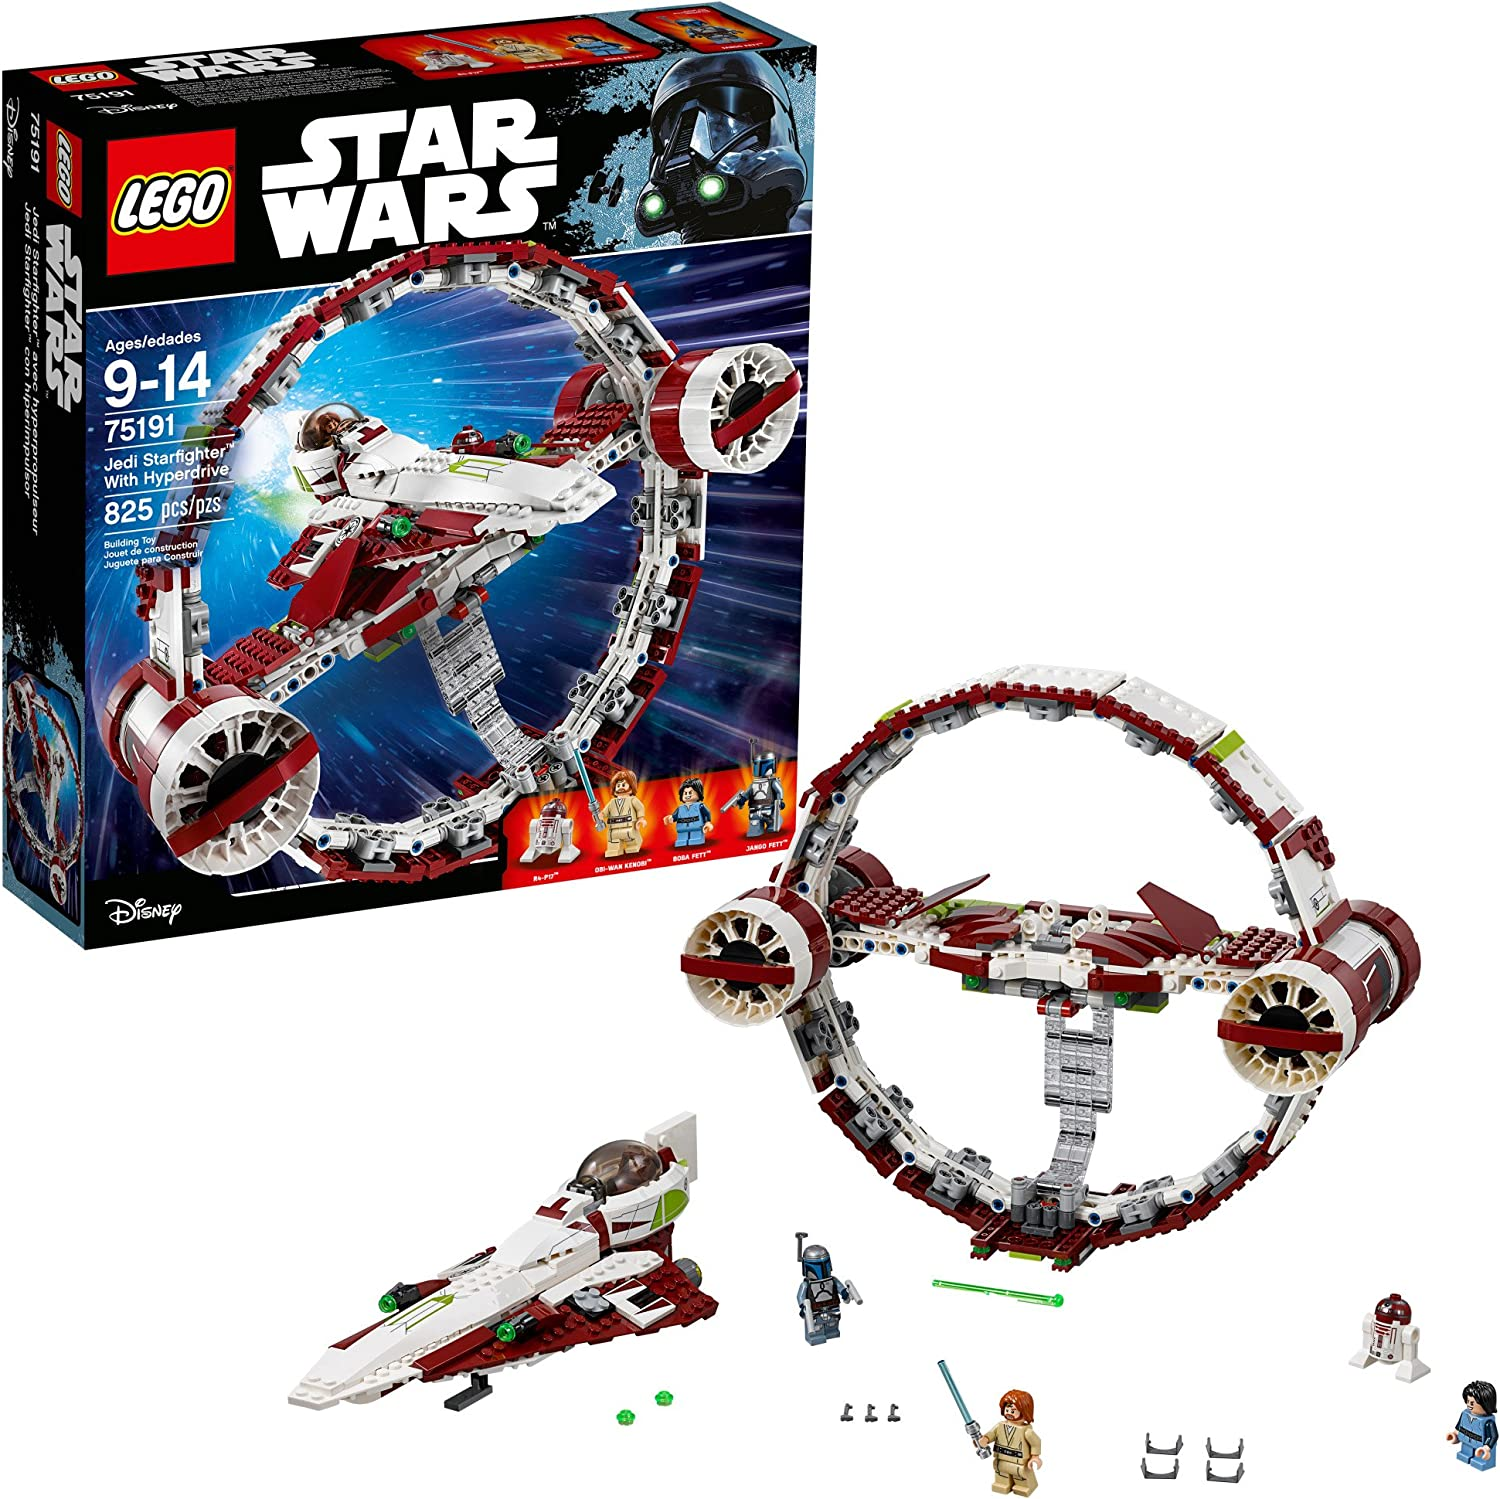 Amazon Com Lego 6175769 Star Wars Jedi Starfighter With Hyperdrive 75191 Building Kit 825 Pieces Toys Games